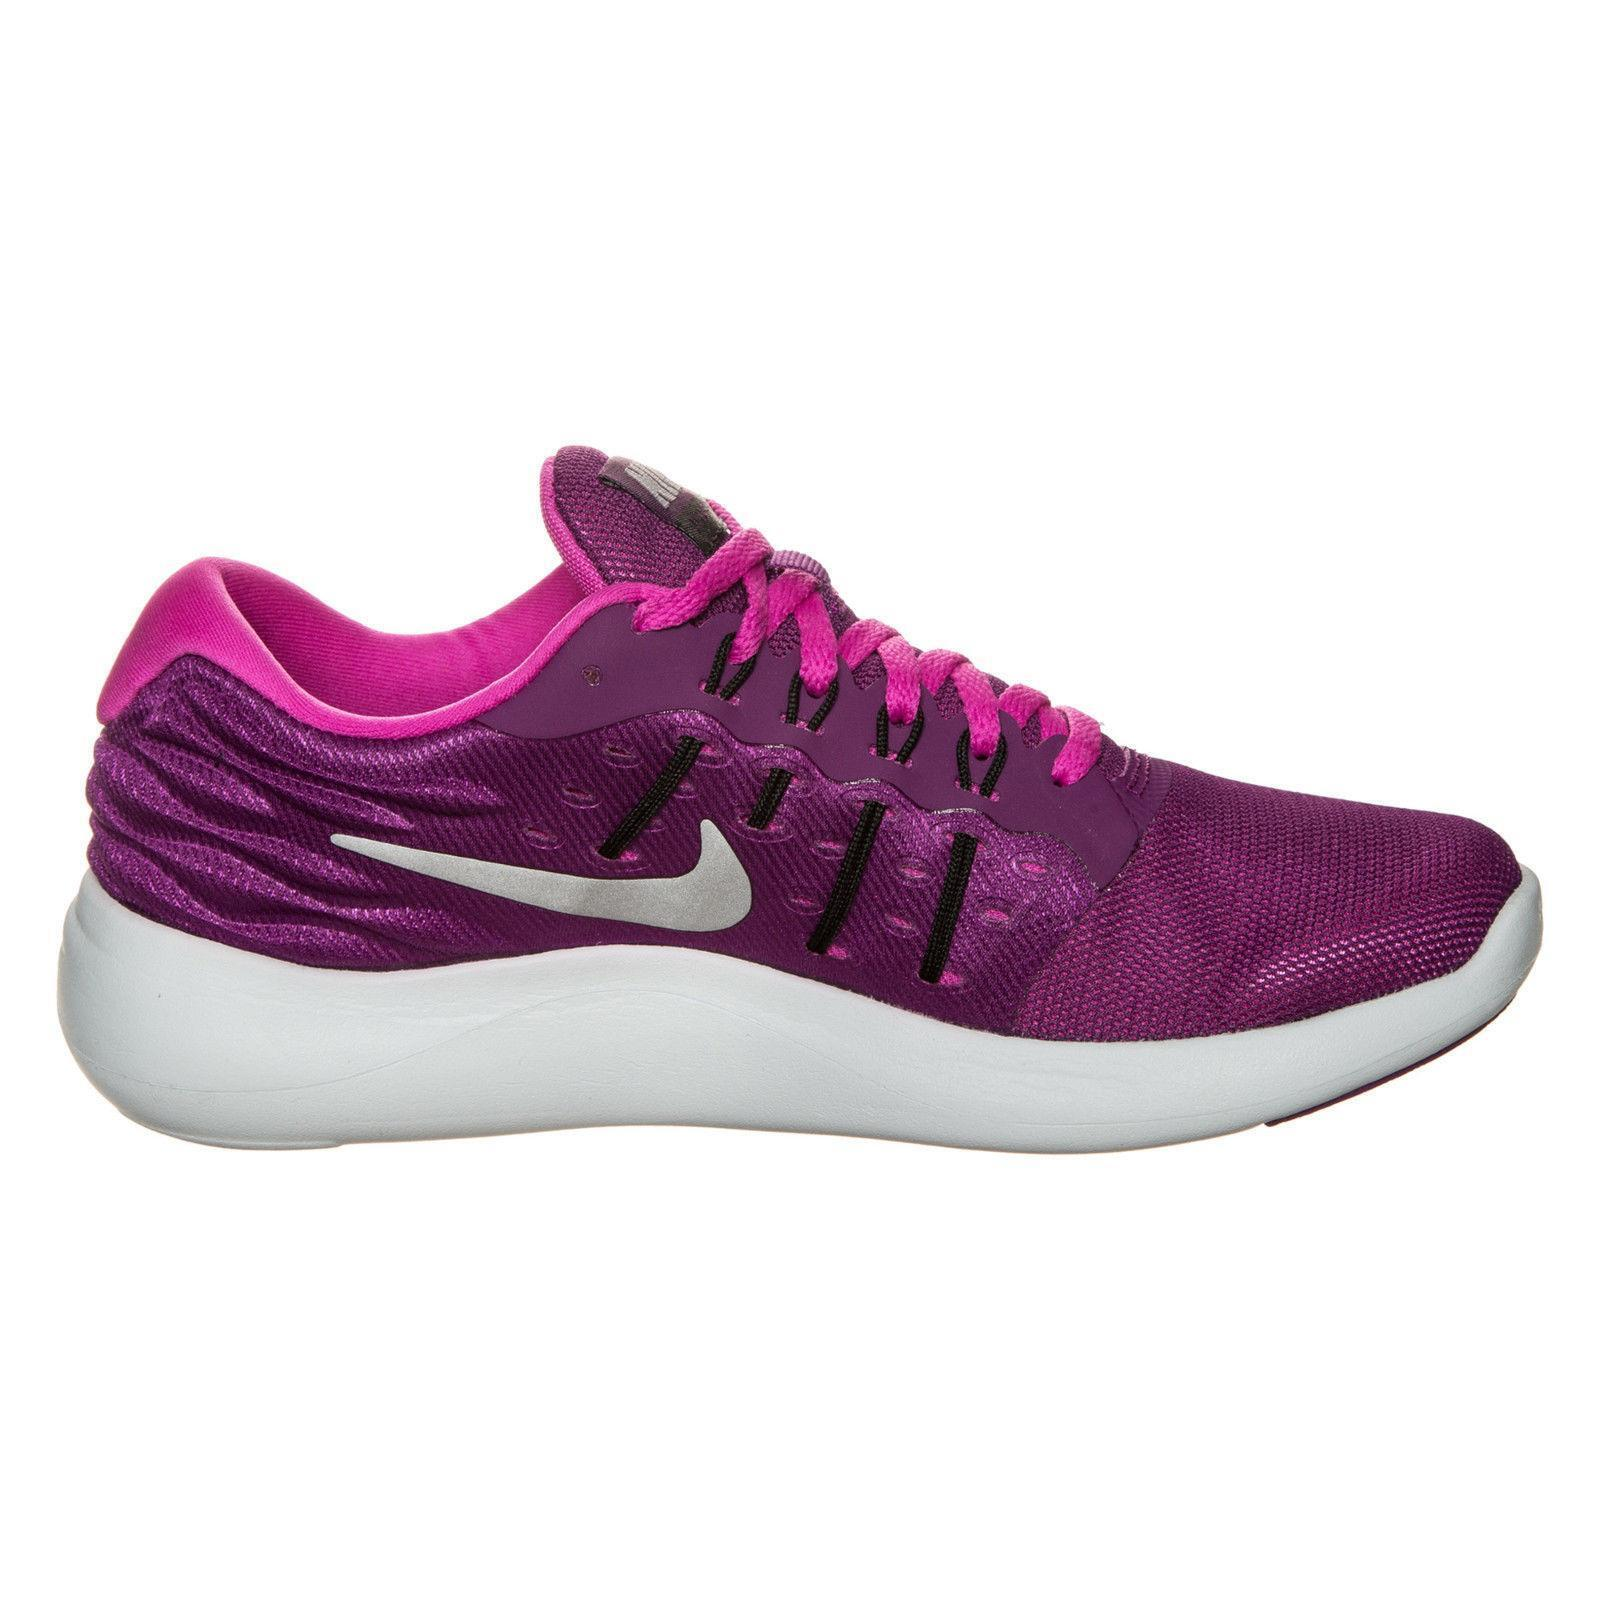 Womens NIKE Lunarstelos Running Trainers 844736 500 US 7